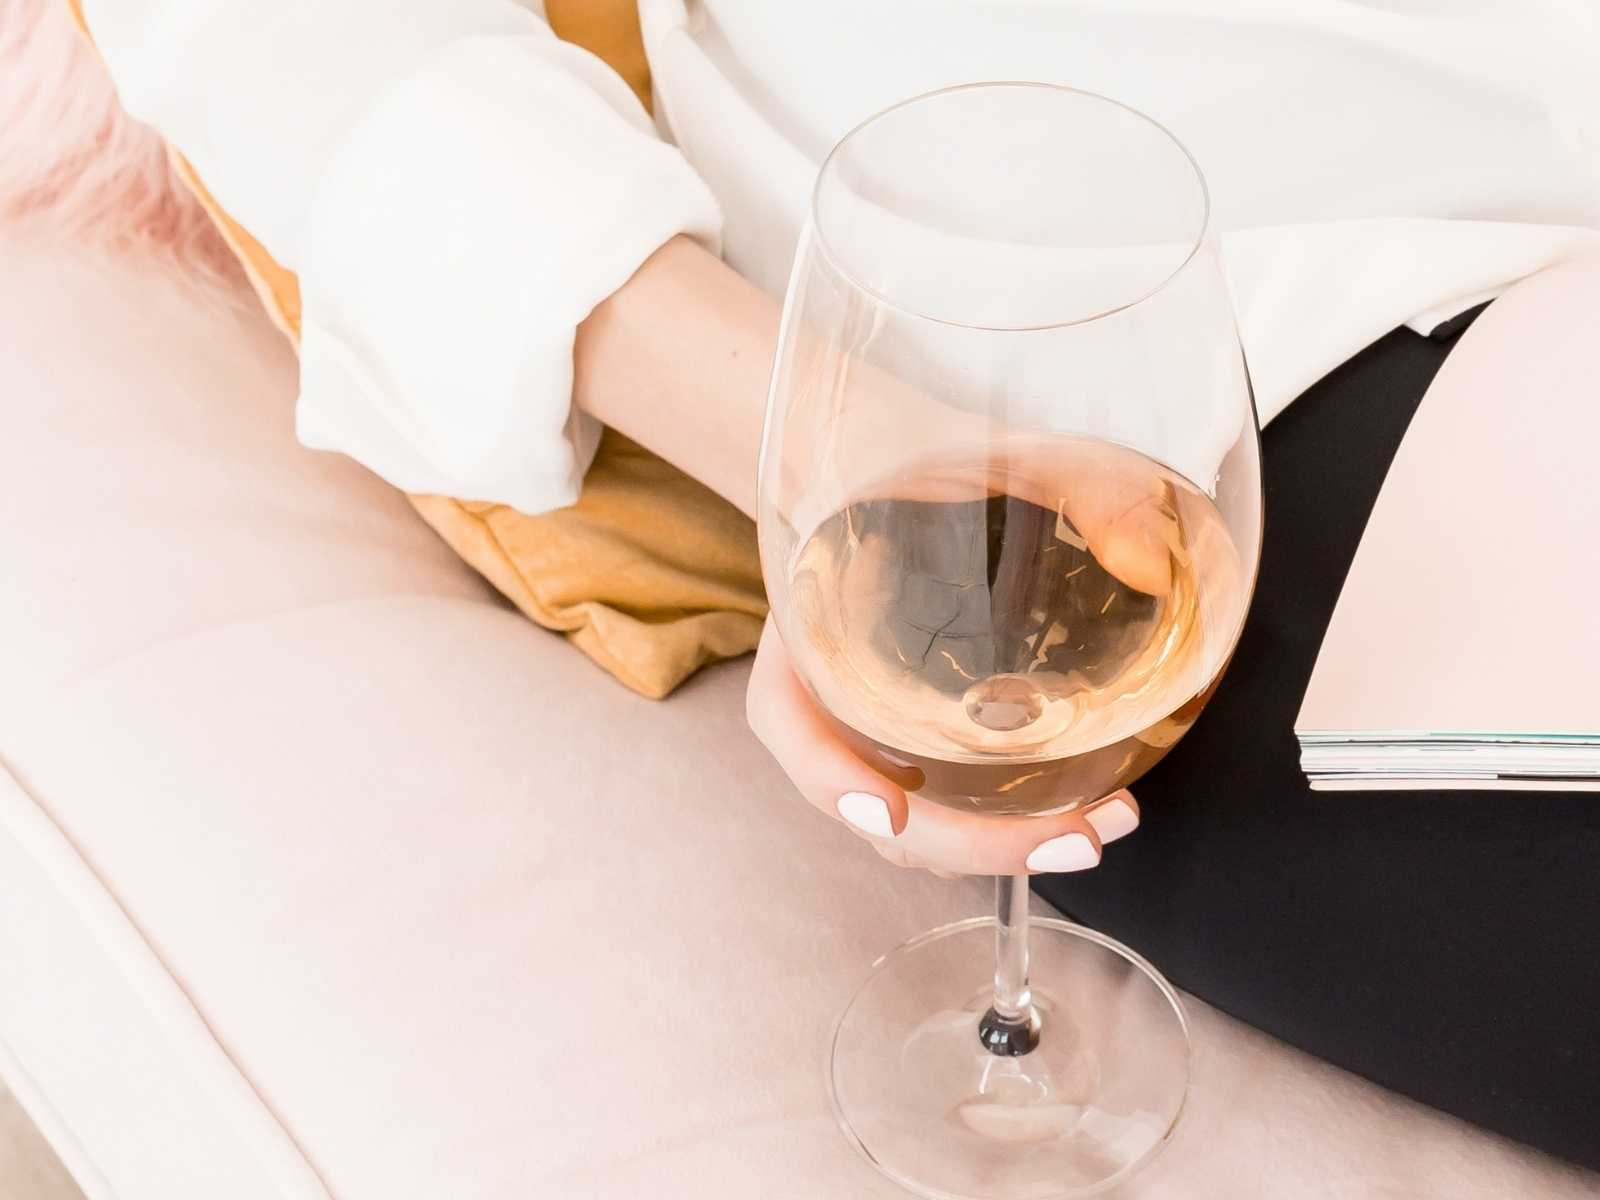 Woman's hand holding a wine glas while reading